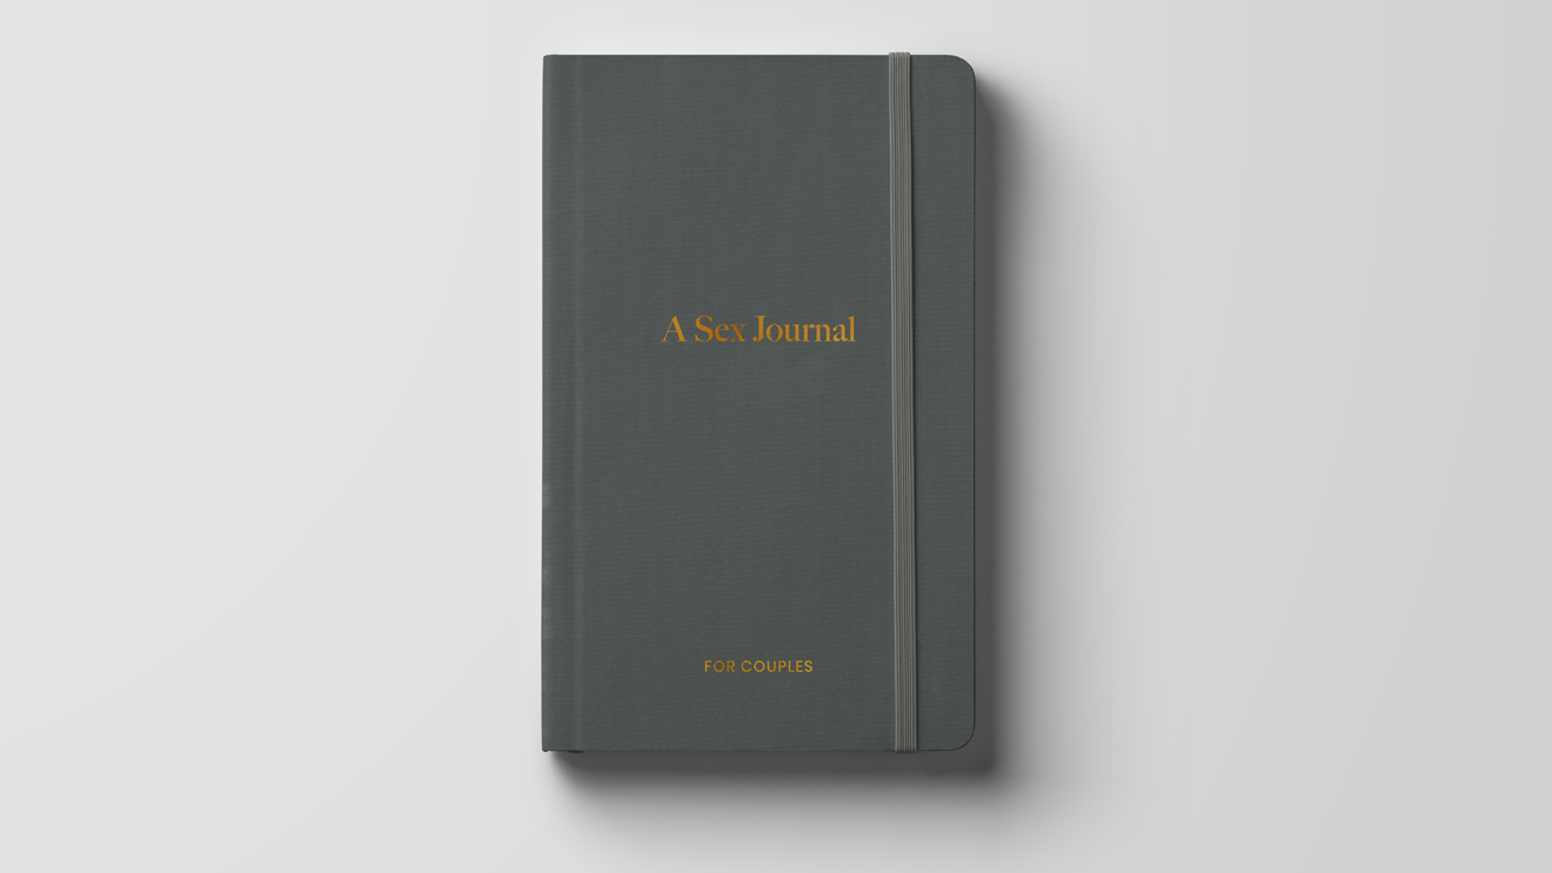 A simple tool for extraordinary sex. A beautiful, shared journal for couples to reflect on and explore sex together.